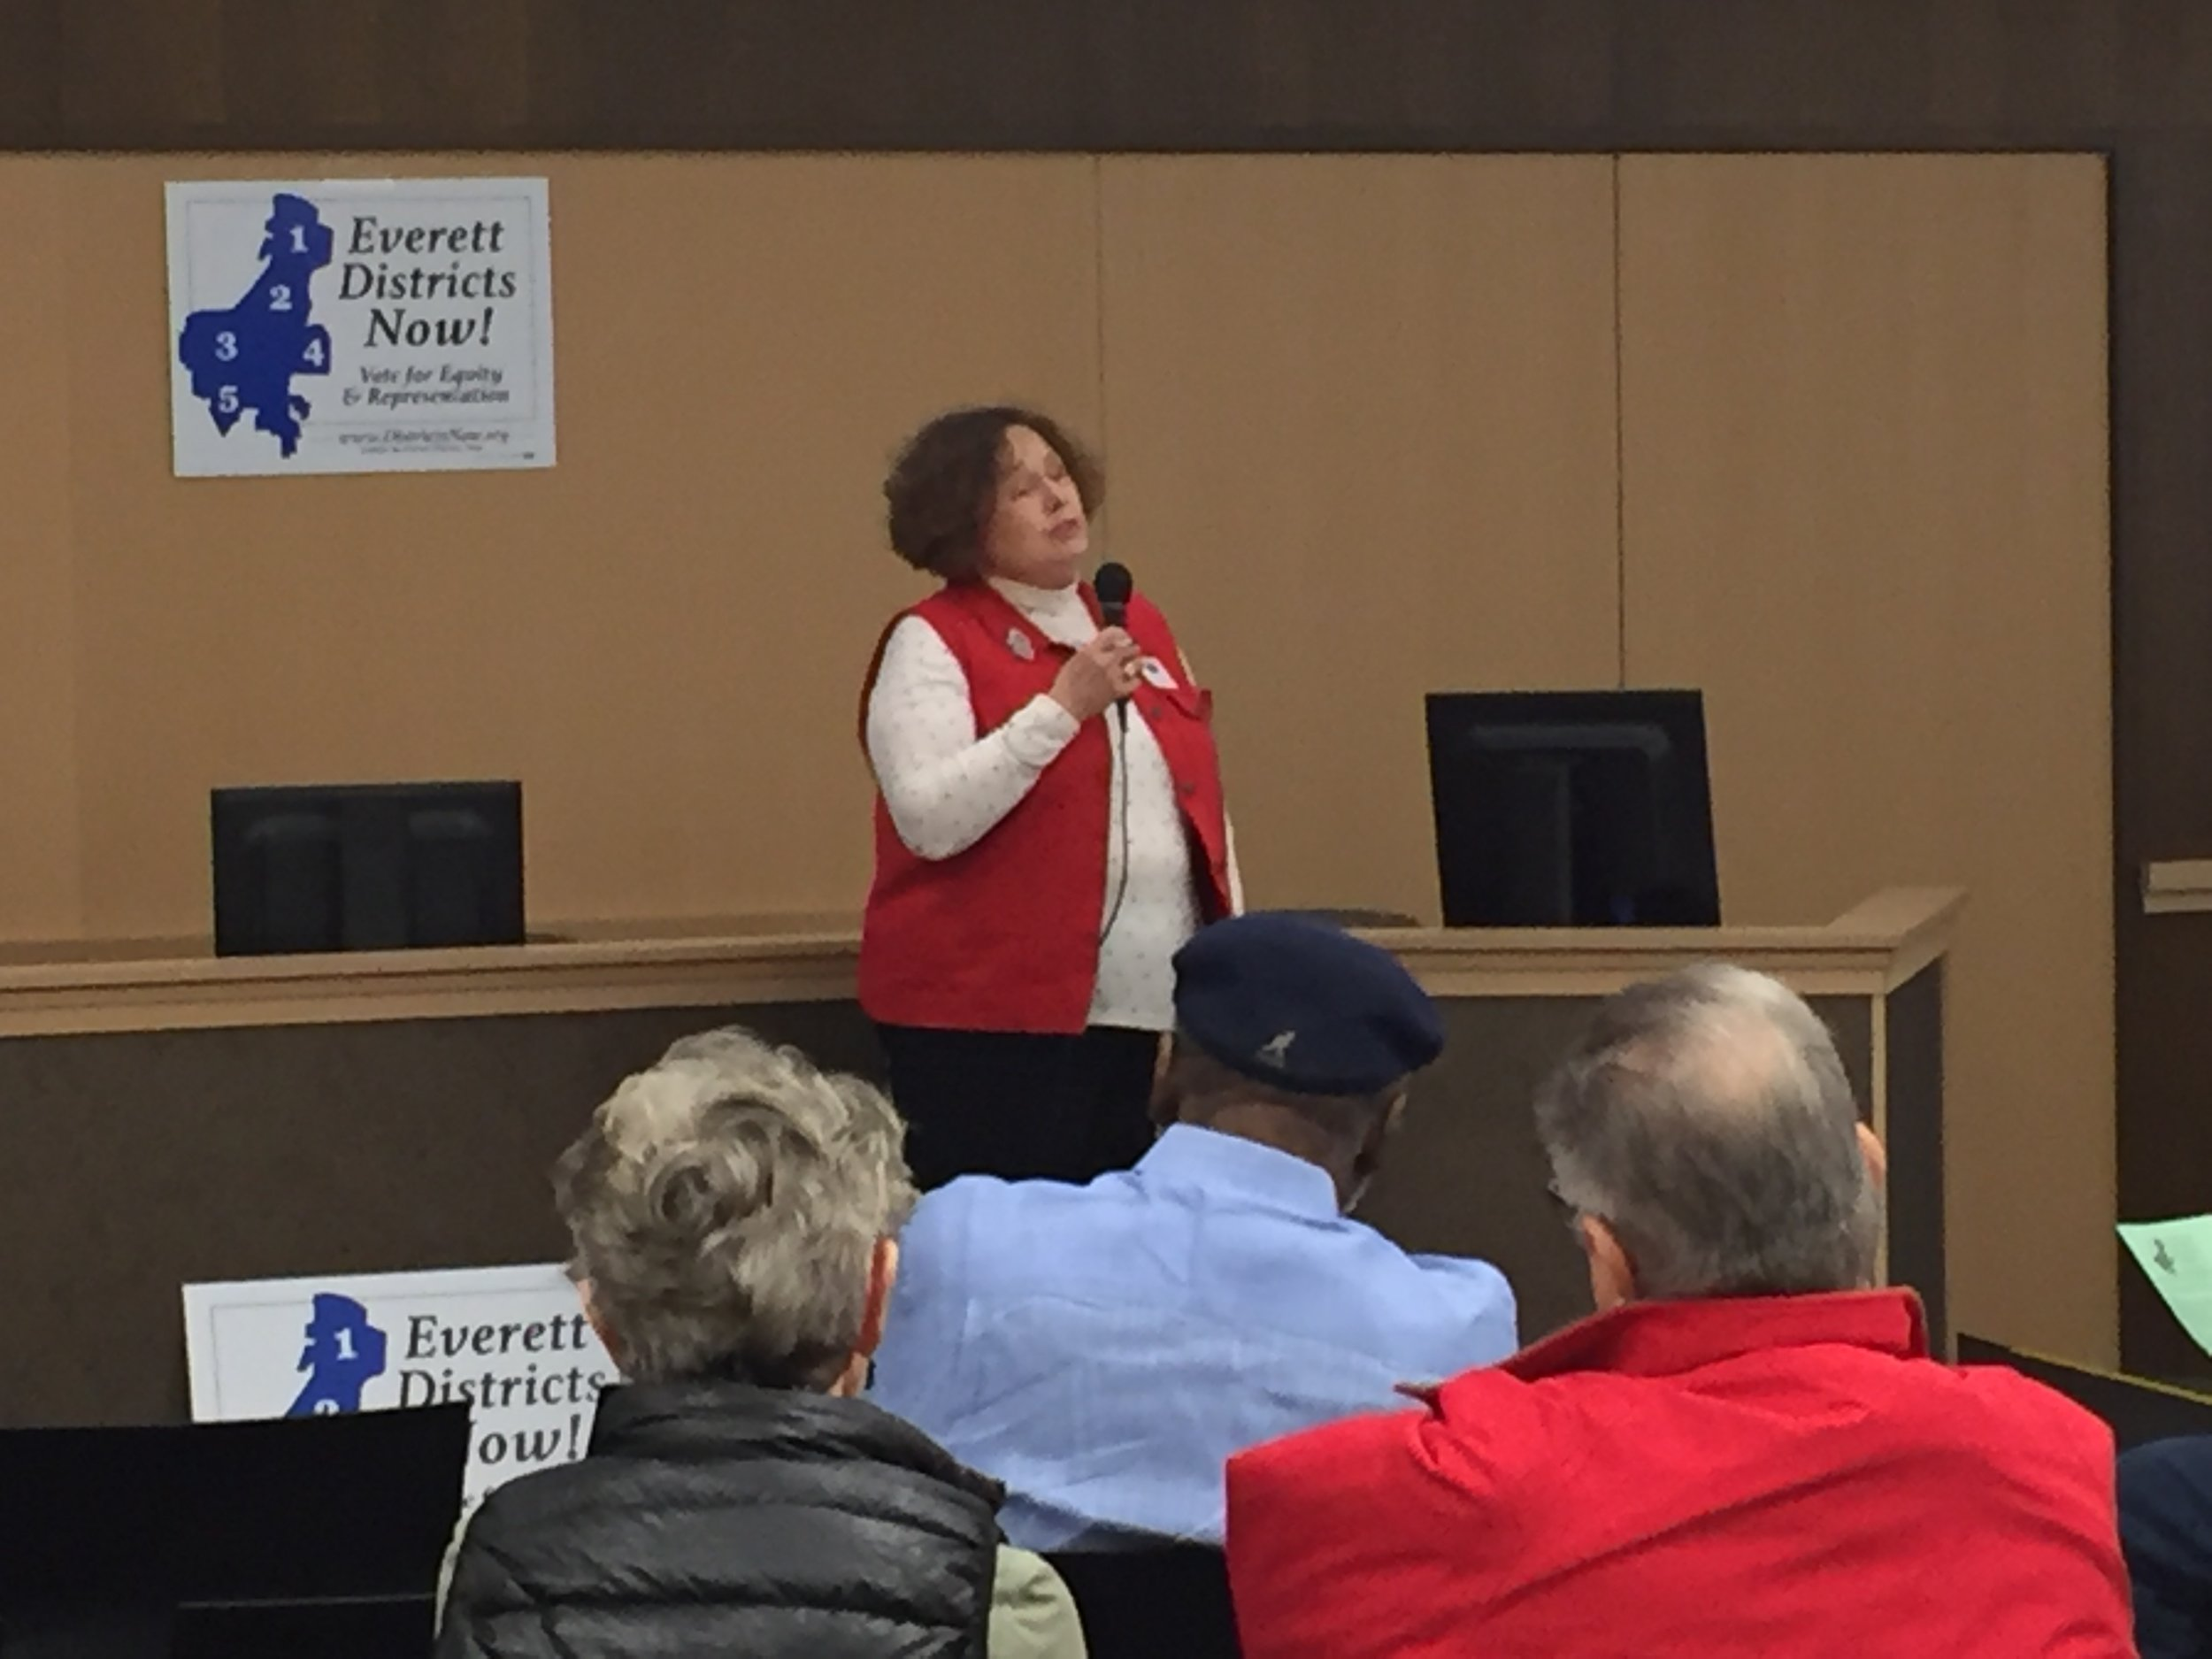 MJ Donavan-Creamer, sharing why the League of Women Voters is fighting for 5-2 districts!